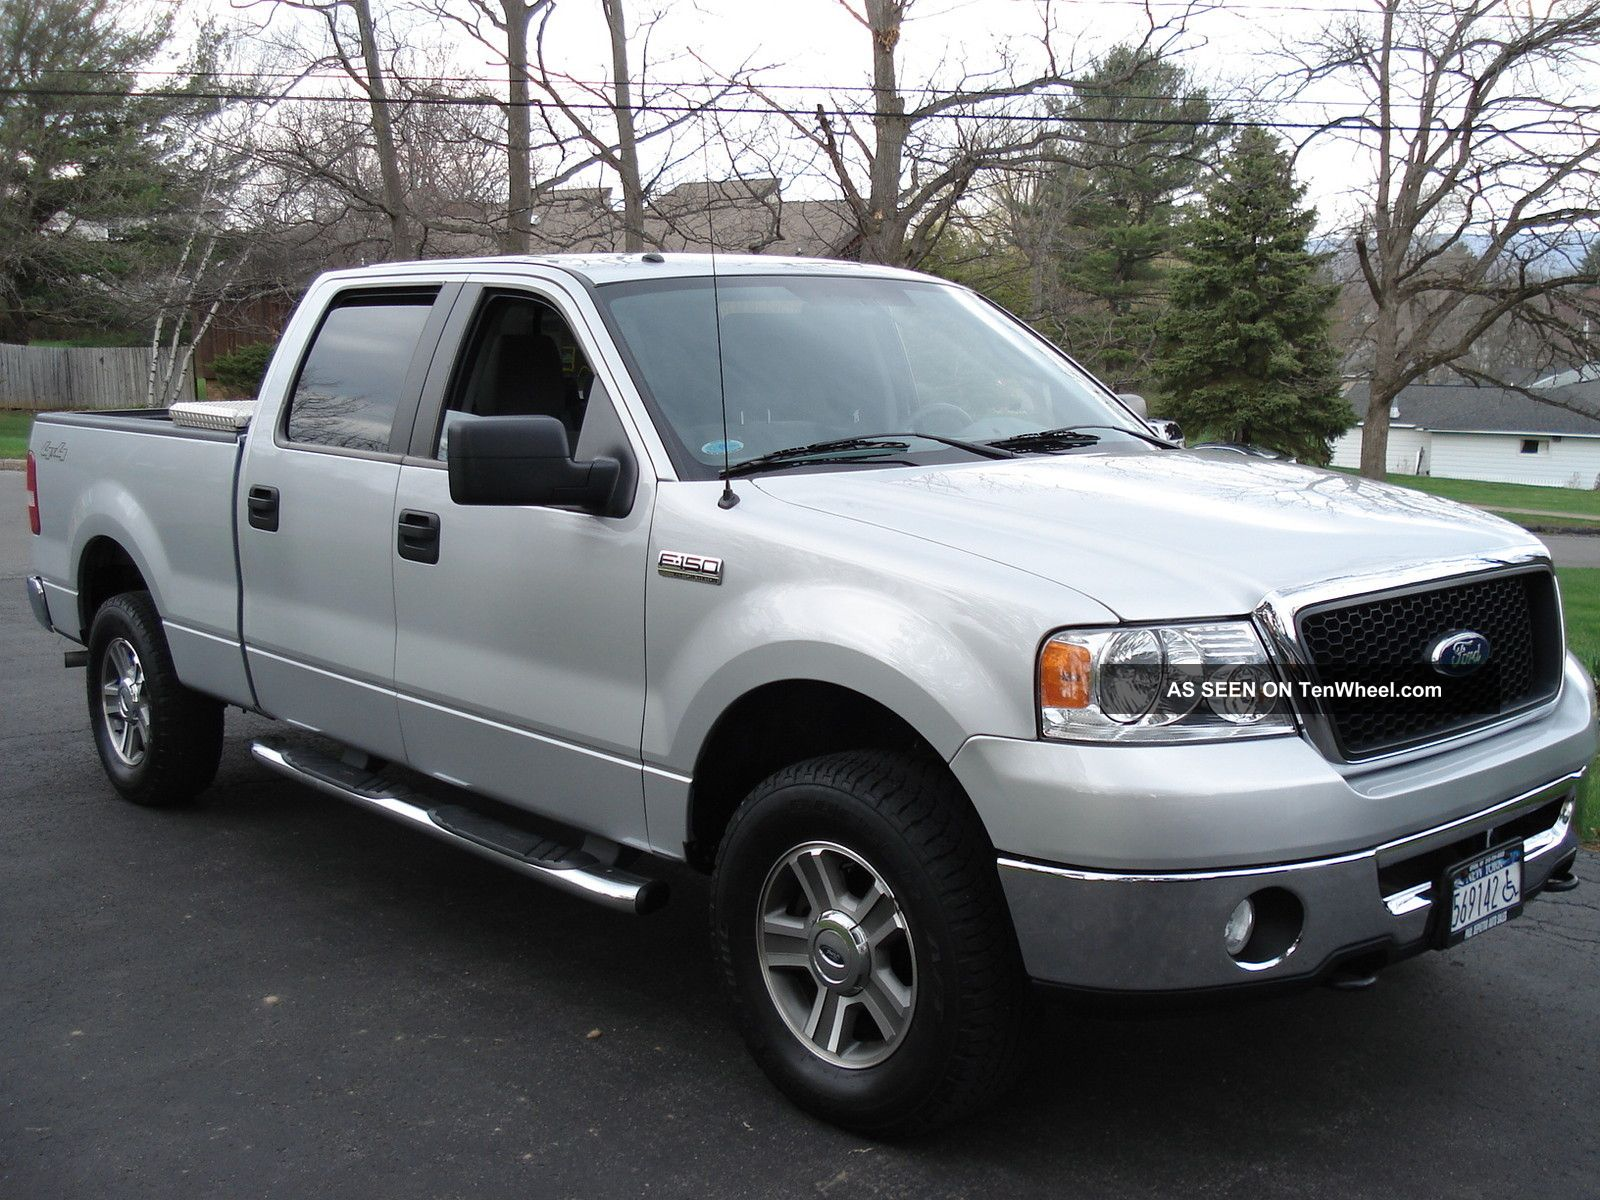 2007 f150 xlt supercab 4x4 dark shadow grey metallic mediumdark pictures. Black Bedroom Furniture Sets. Home Design Ideas